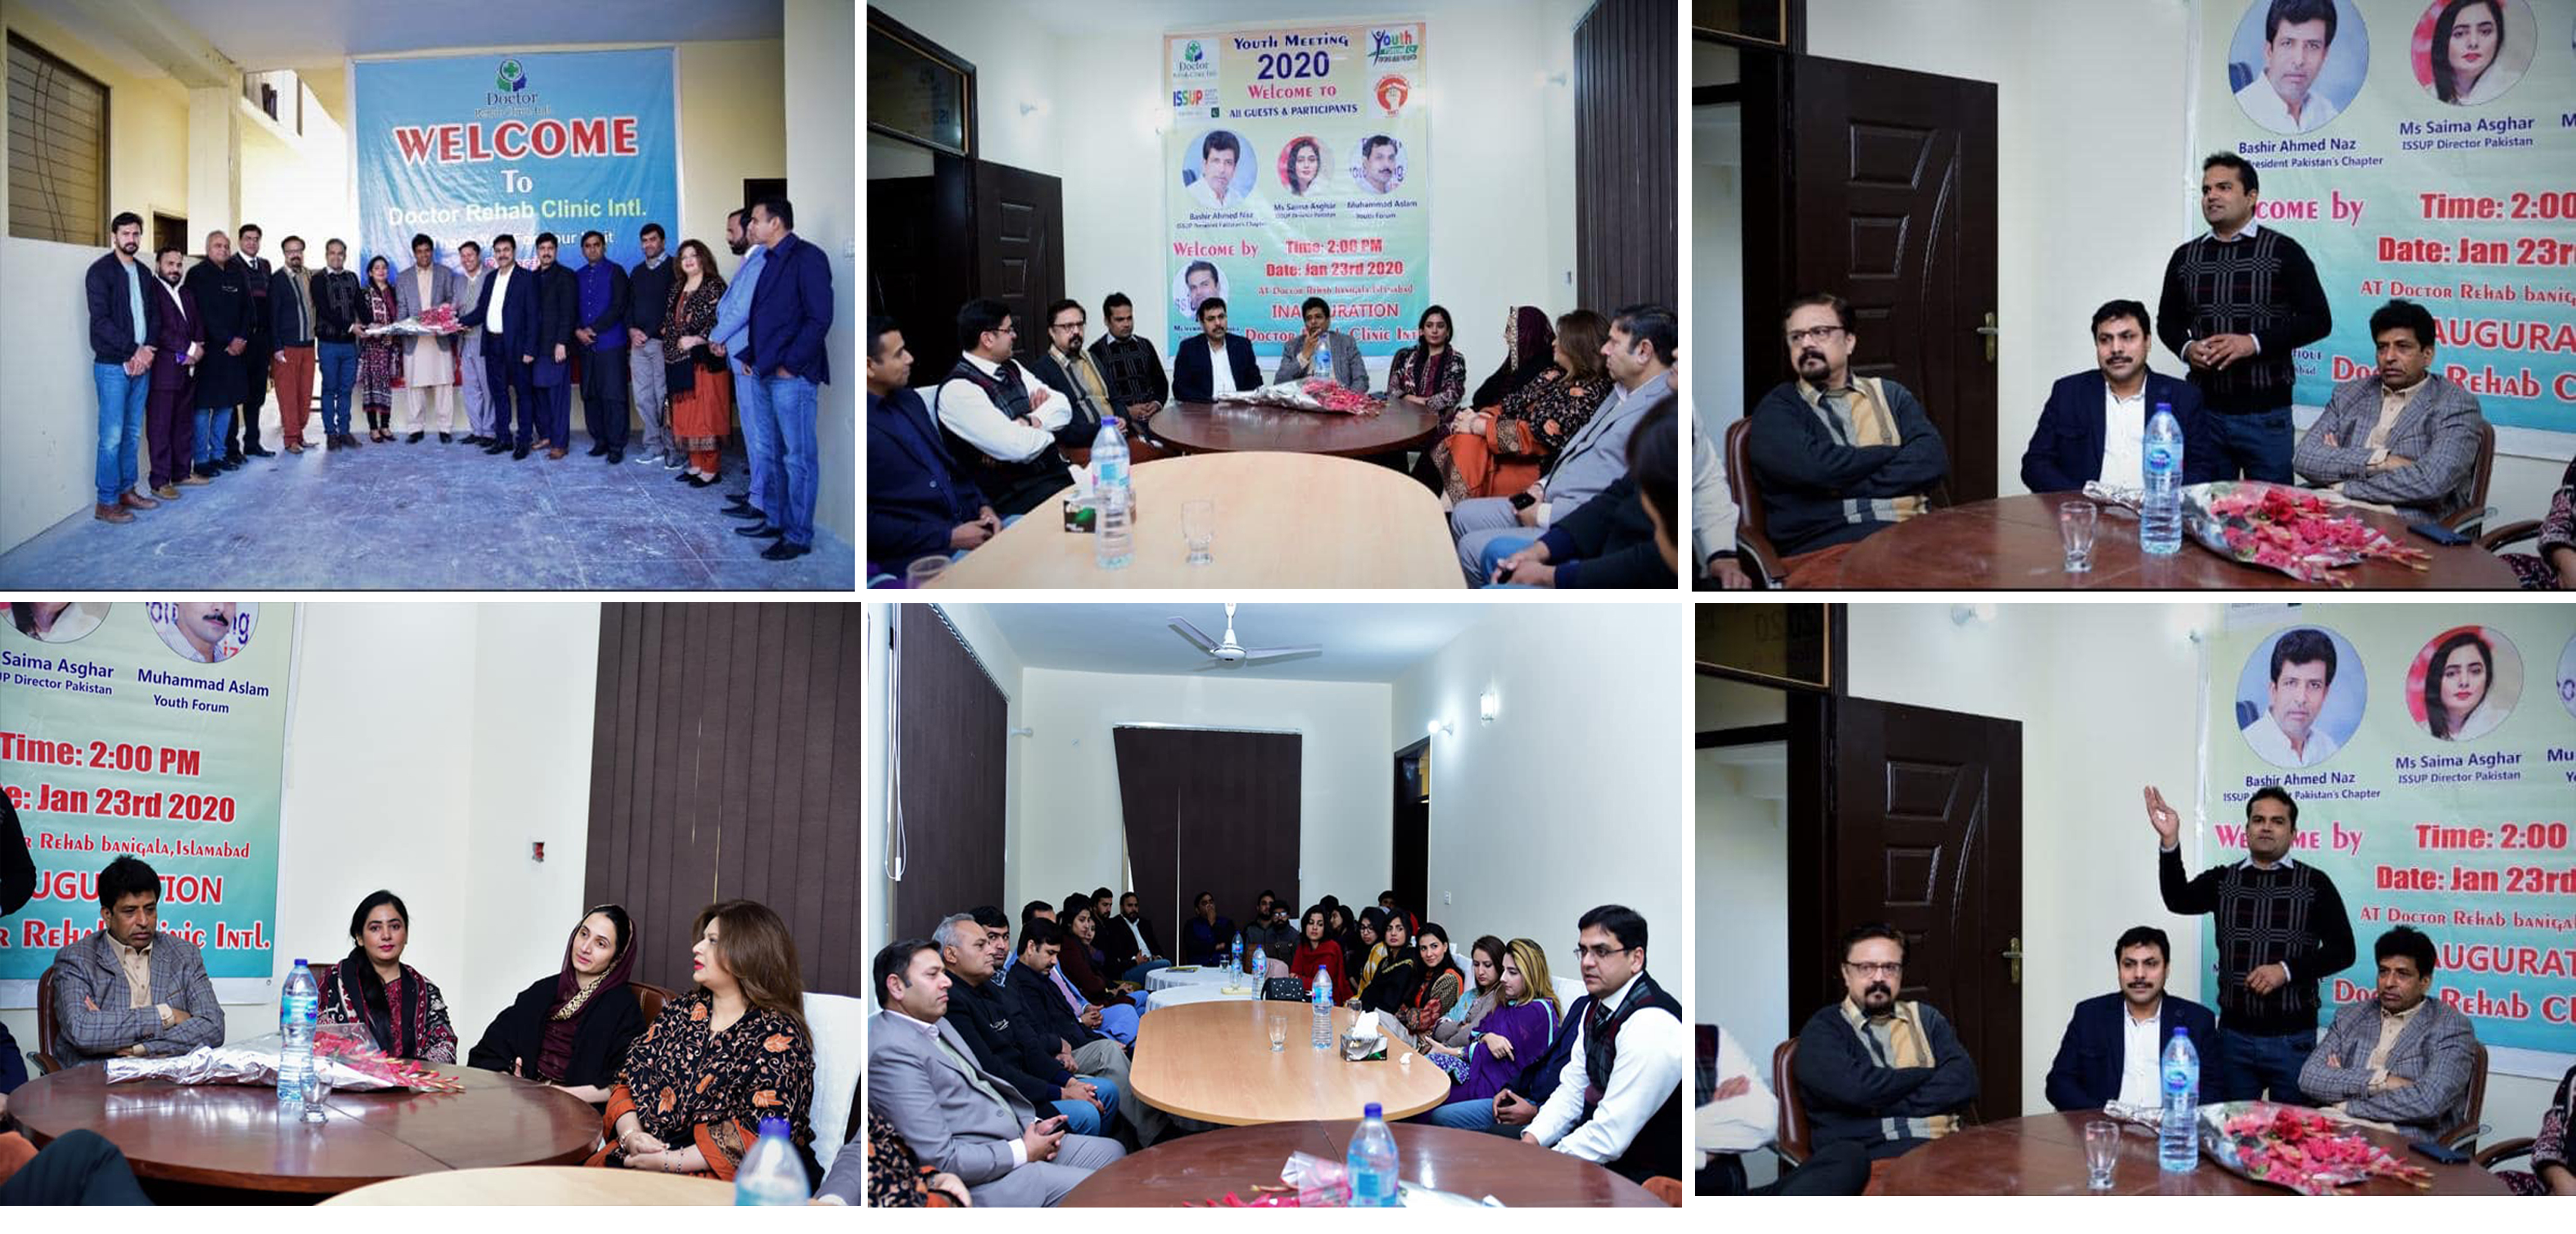 Inauguration of New SUD Treatment Facility ''Dr. Rehab Clinic International'', Islamabad and Meeting with ISSUP Members & Youth Forum Pakistan's Team Islamabad